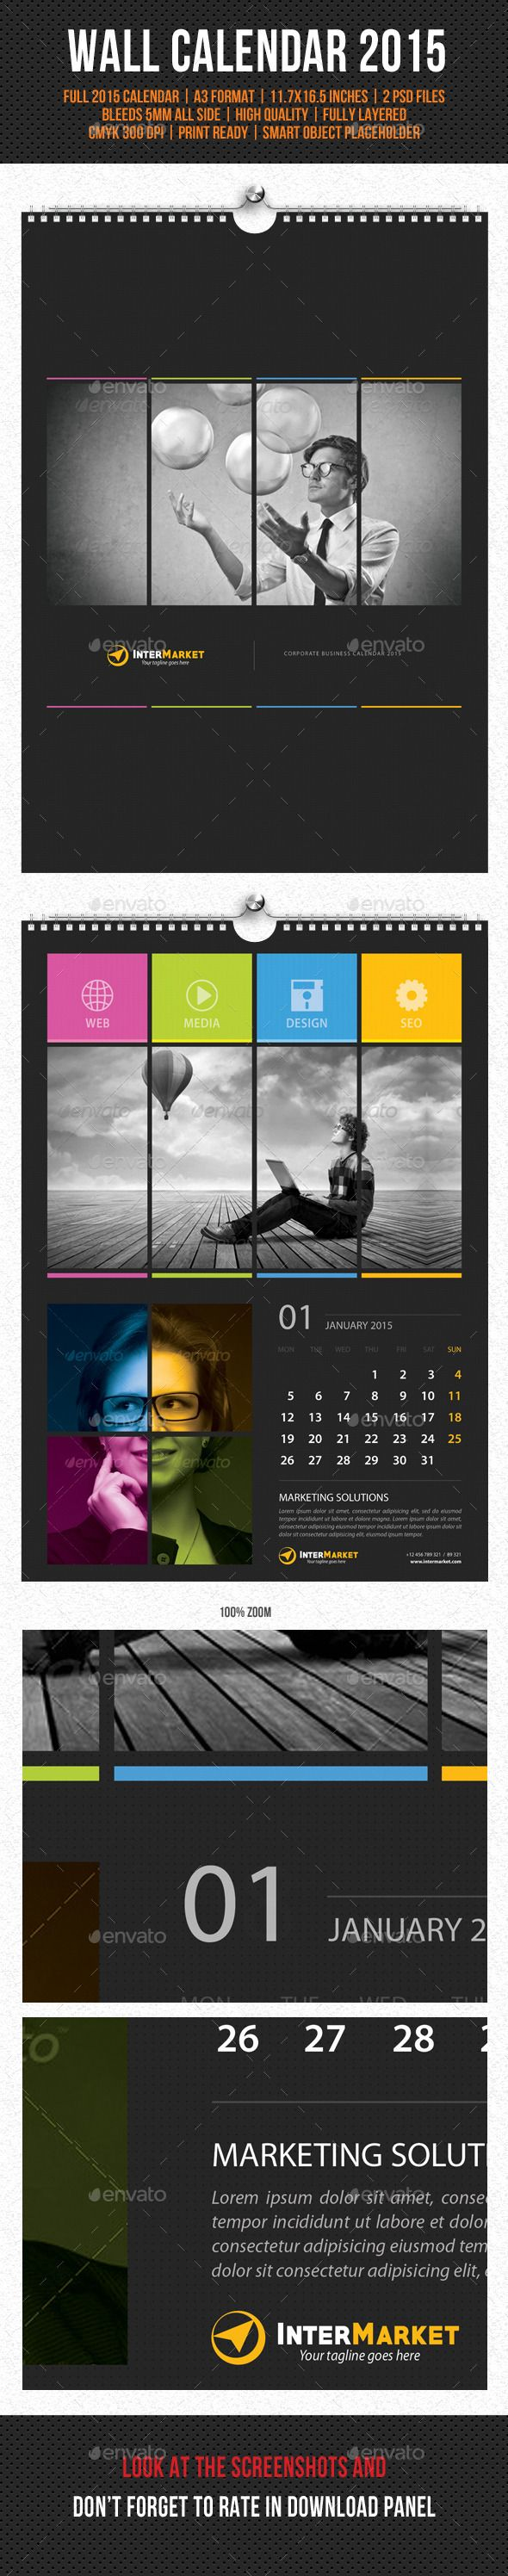 Corporate Wall Calendar 2015 Template | Buy and Download: http://graphicriver.net/item/corporate-wall-calendar-2015-v04/9791401?ref=ksioks